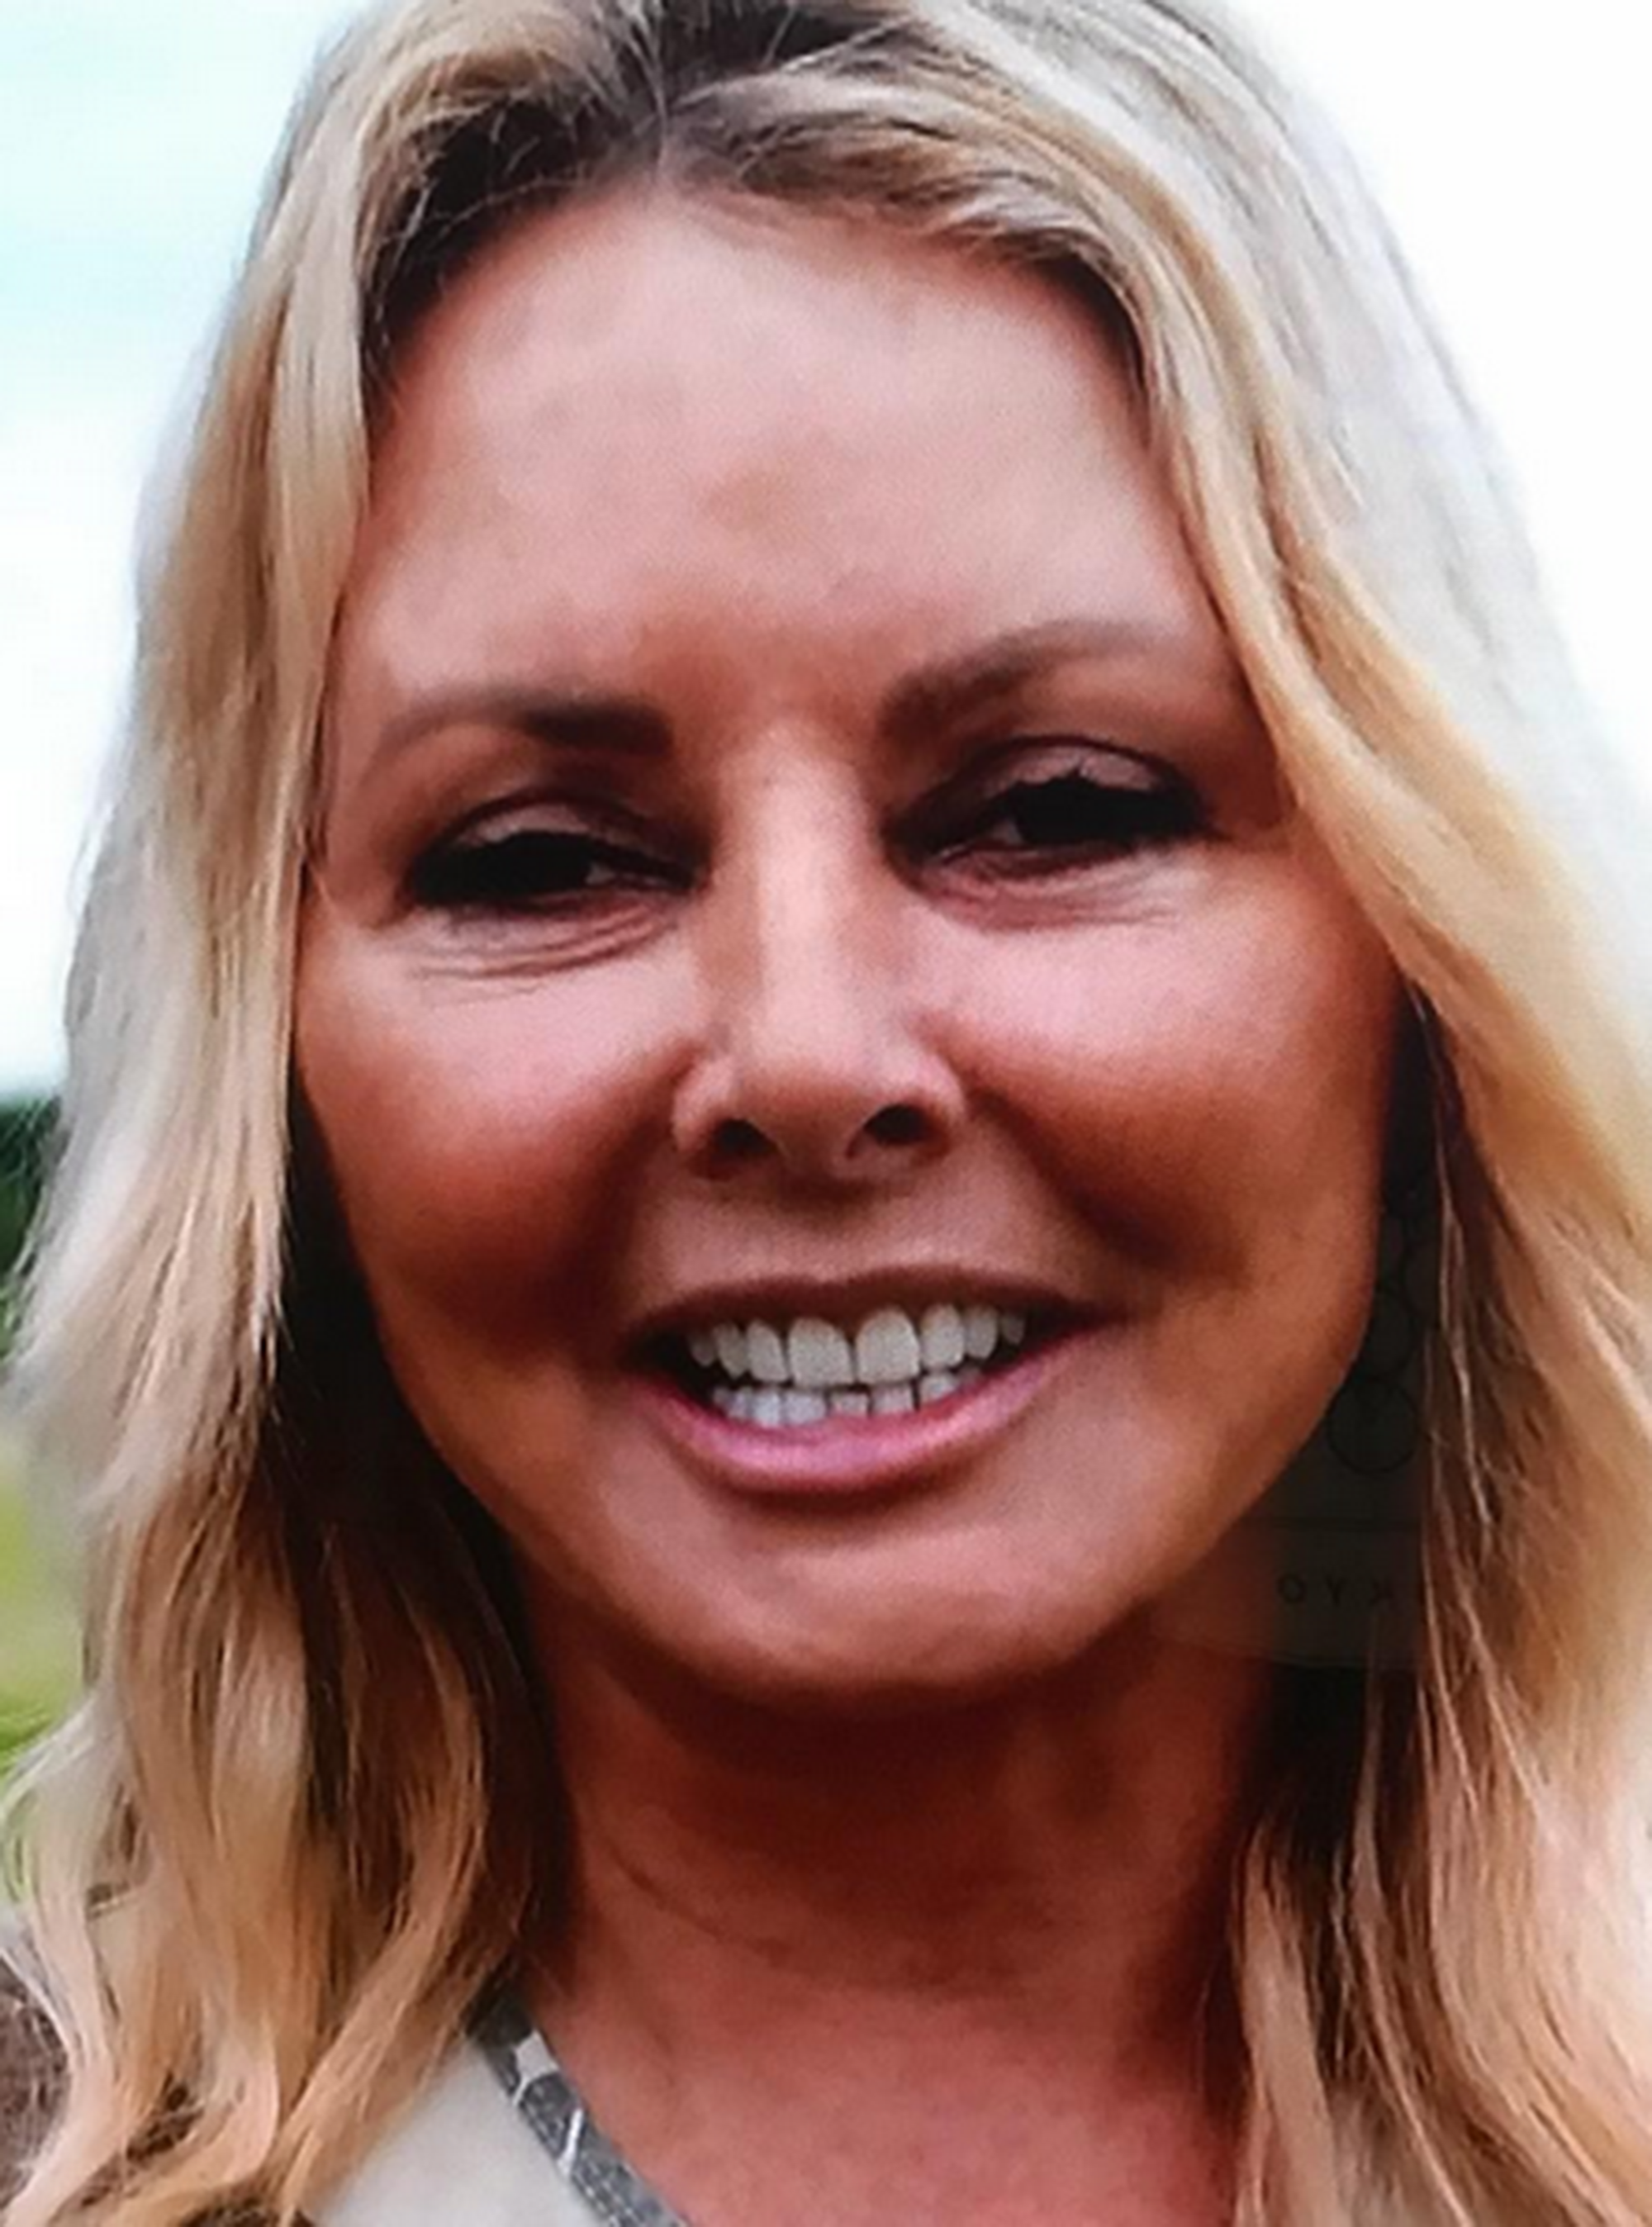 No Sleep, Heartbroken': Carol Vorderman Explains The Reason For Her Puffy' Face